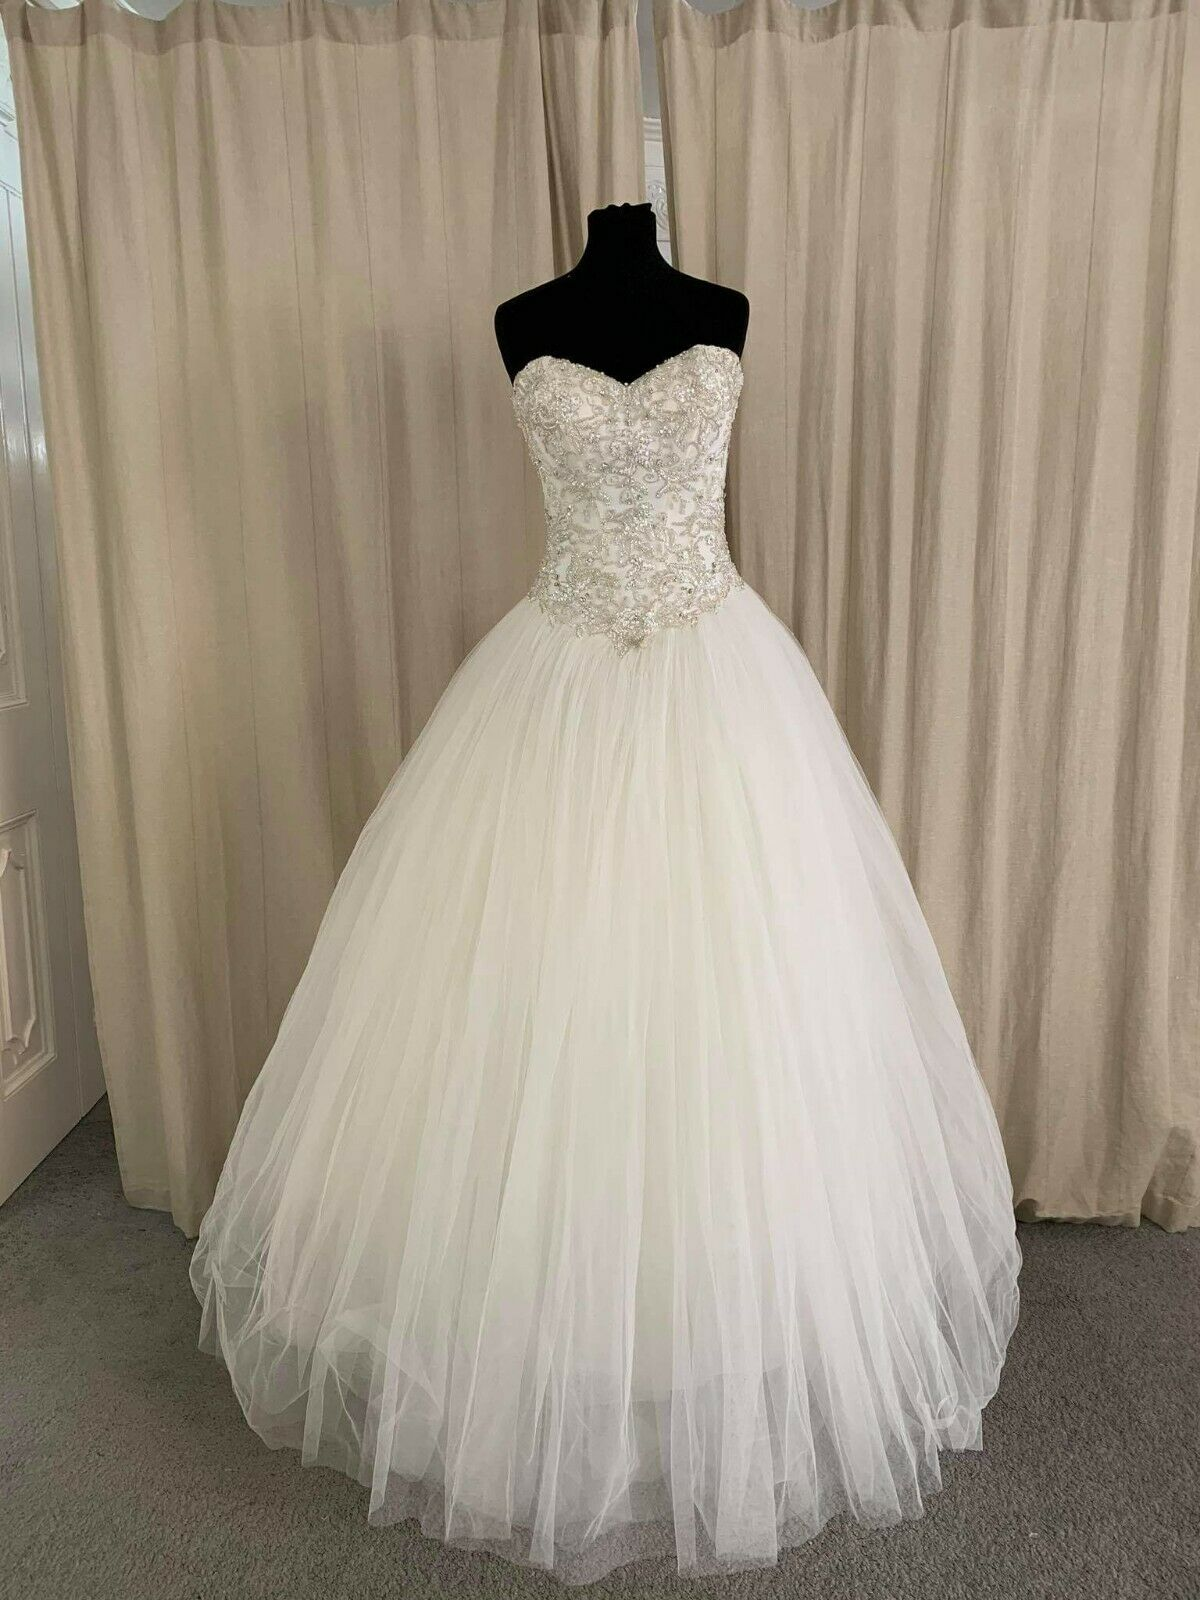 Ladybird Bridal princess wedding dress style 218003 size 16 Fitted in ivory